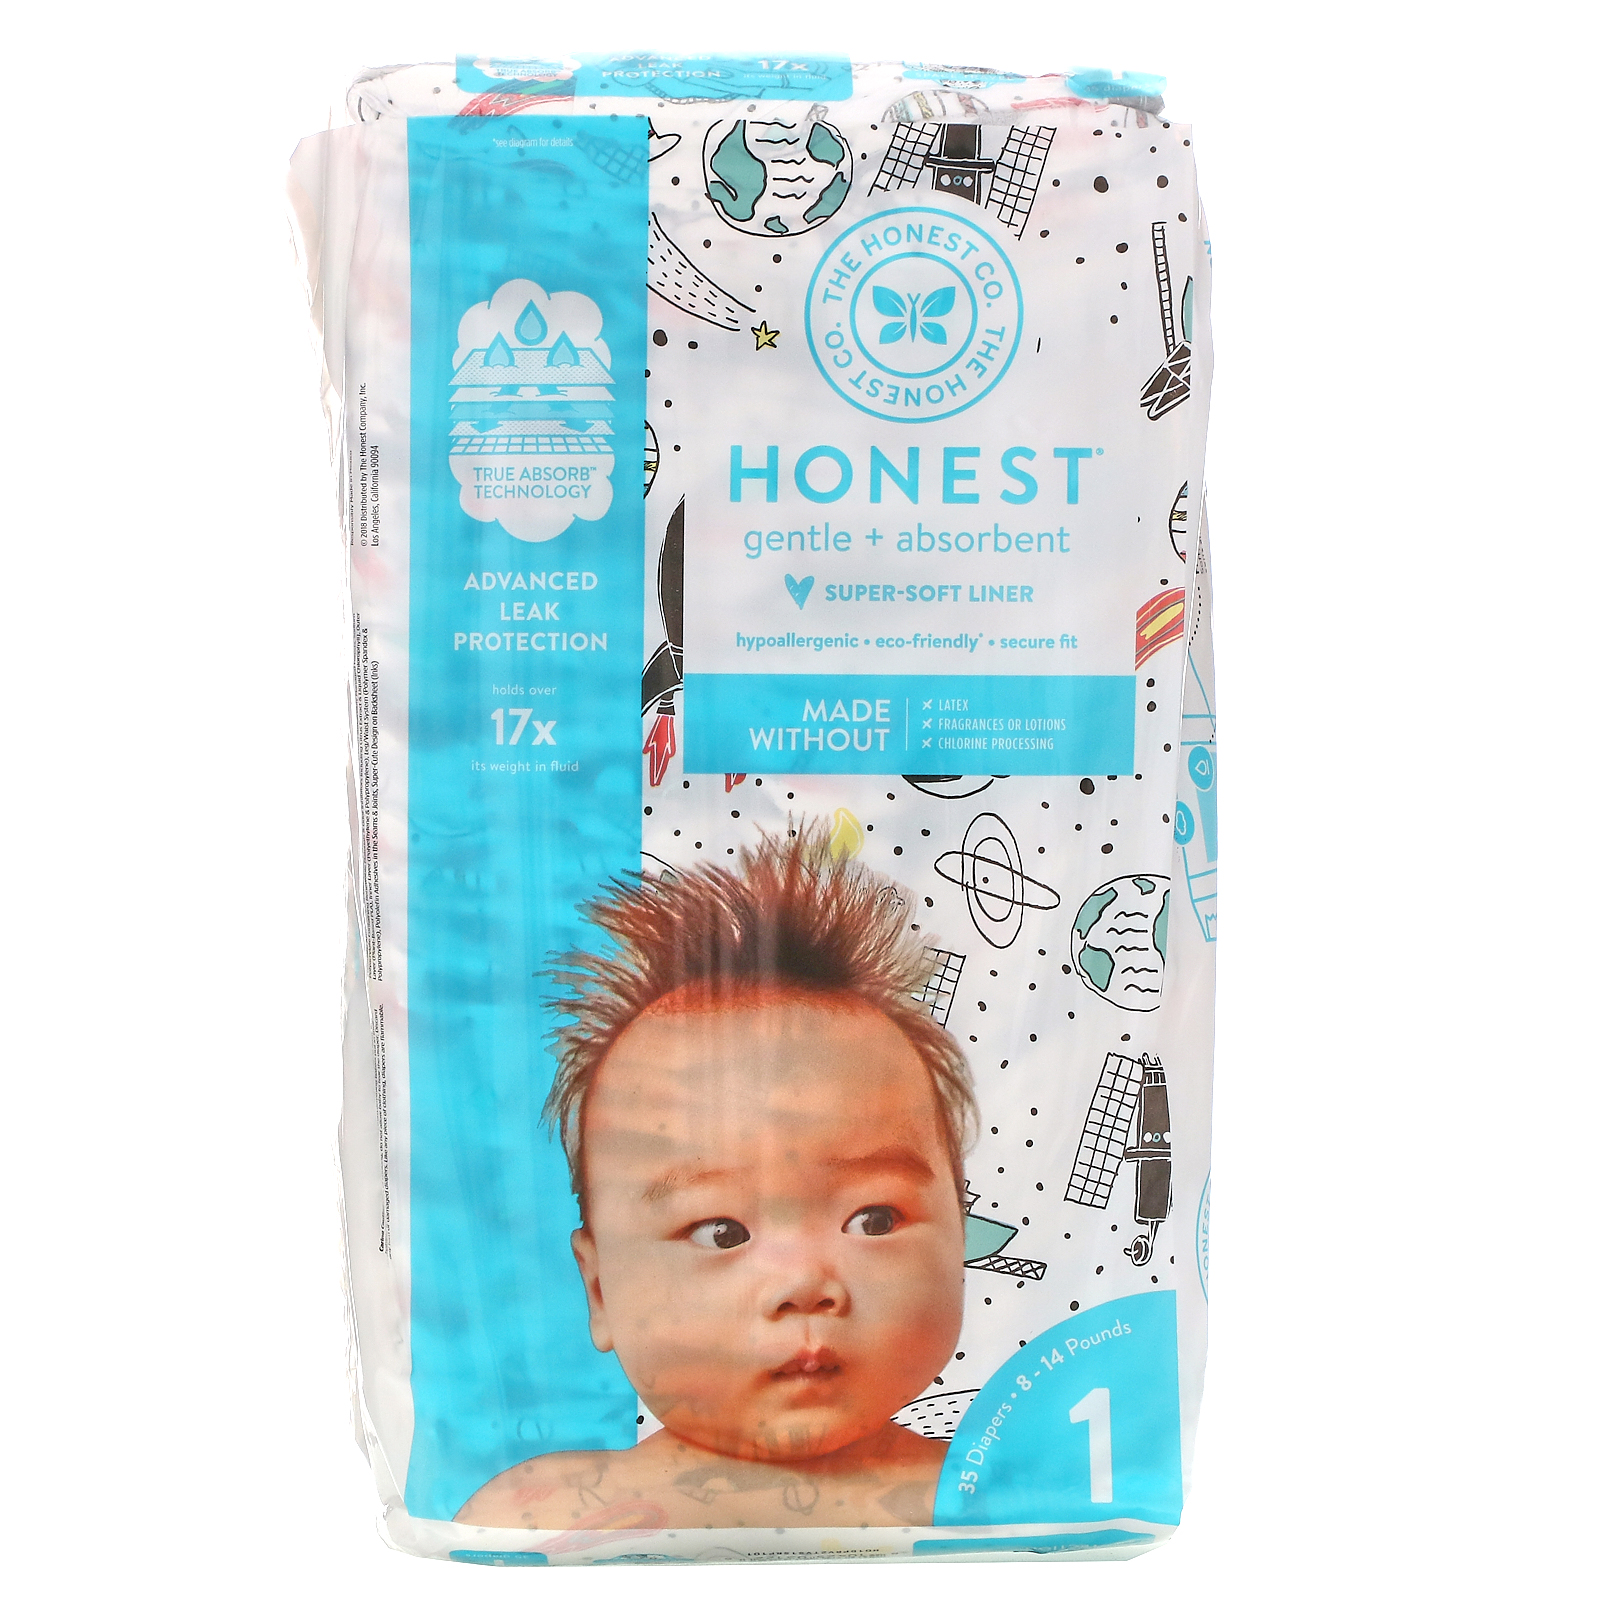 The Honest Company, Honest Diapers, Size 1, 8-14 Pounds, Space Travel, 35 Diapers